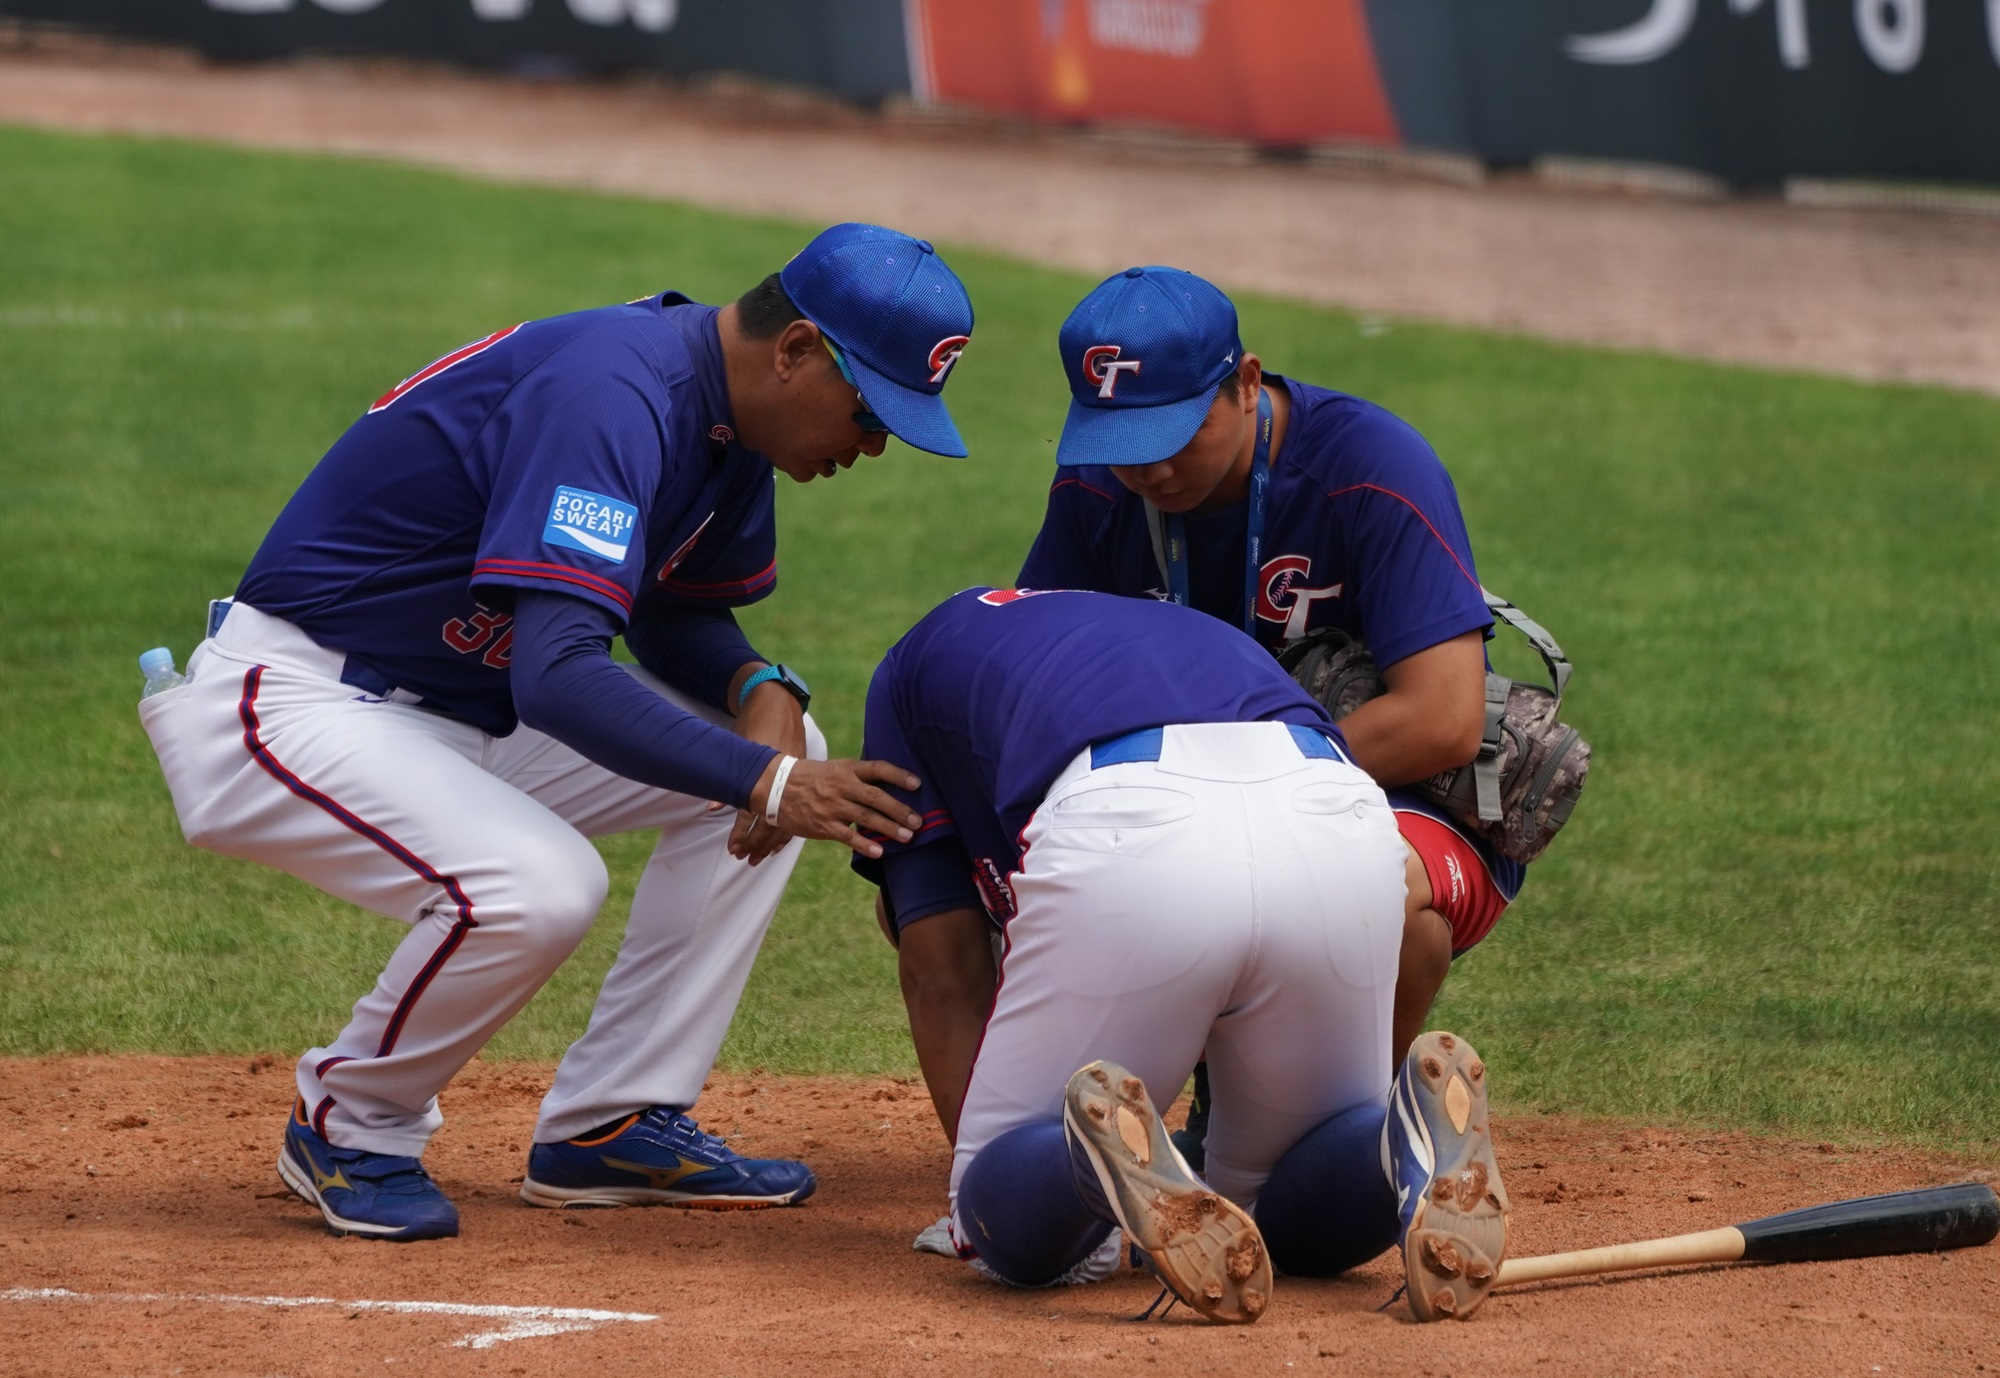 There are dangerous moments on a baseball field